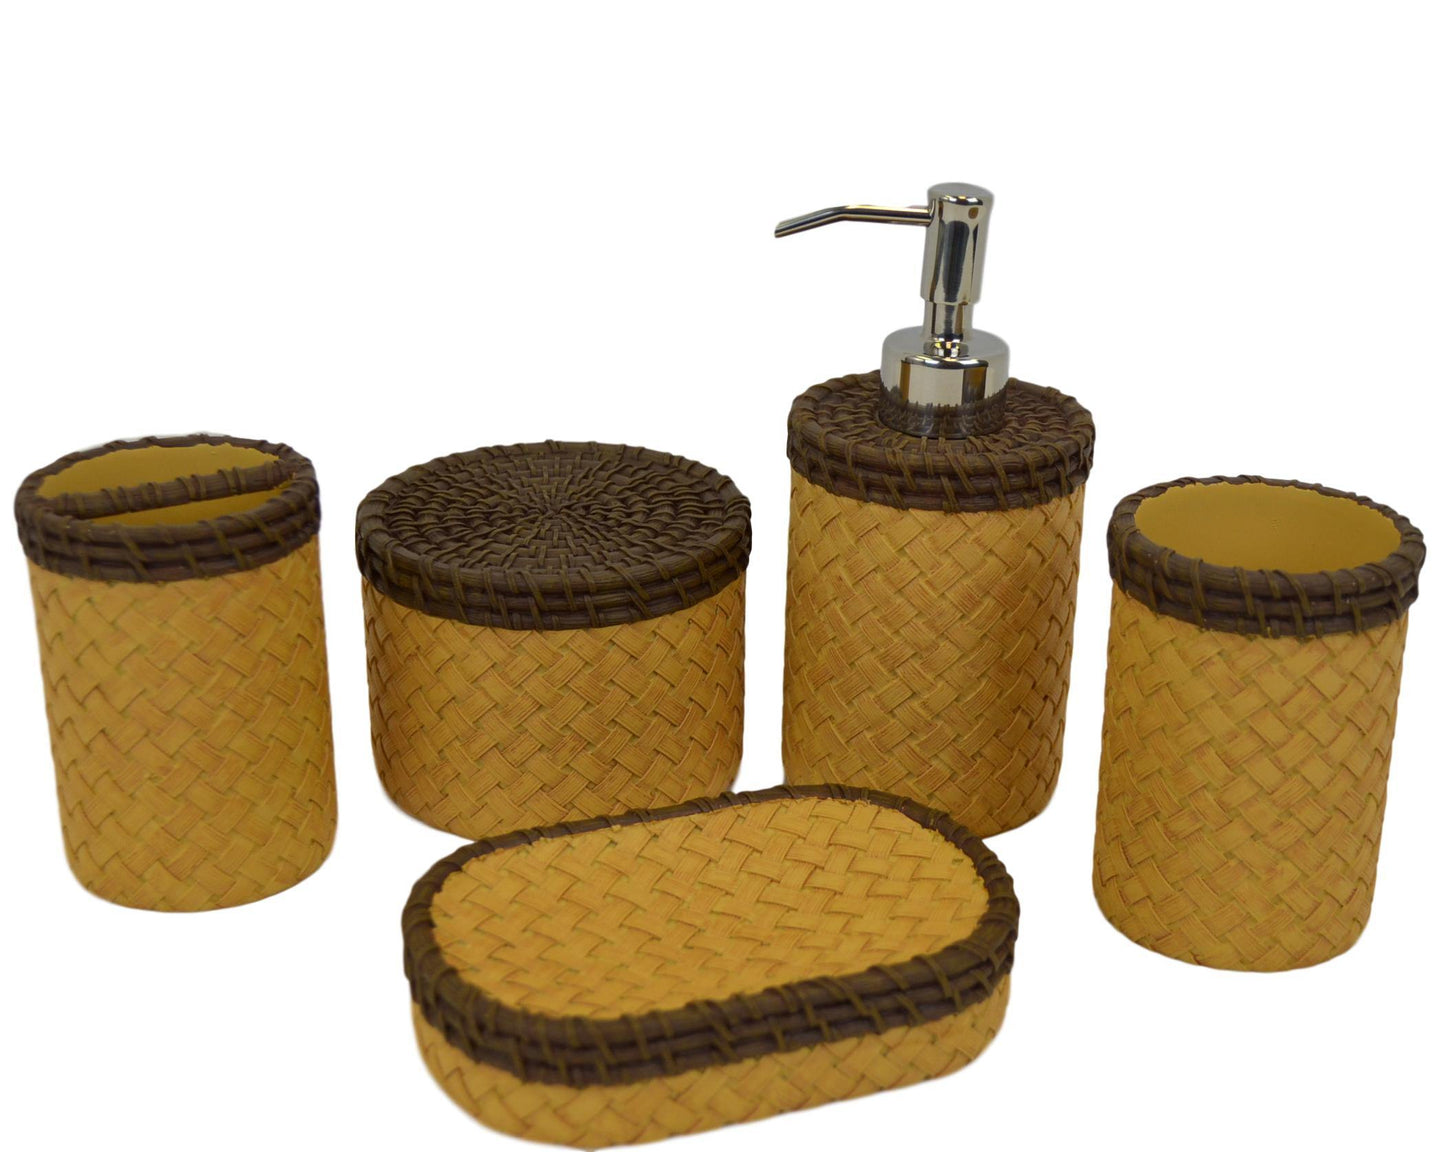 5 Piece Bathroom Set of Brown & Beige Basket Weave Design - Nature Home Decor